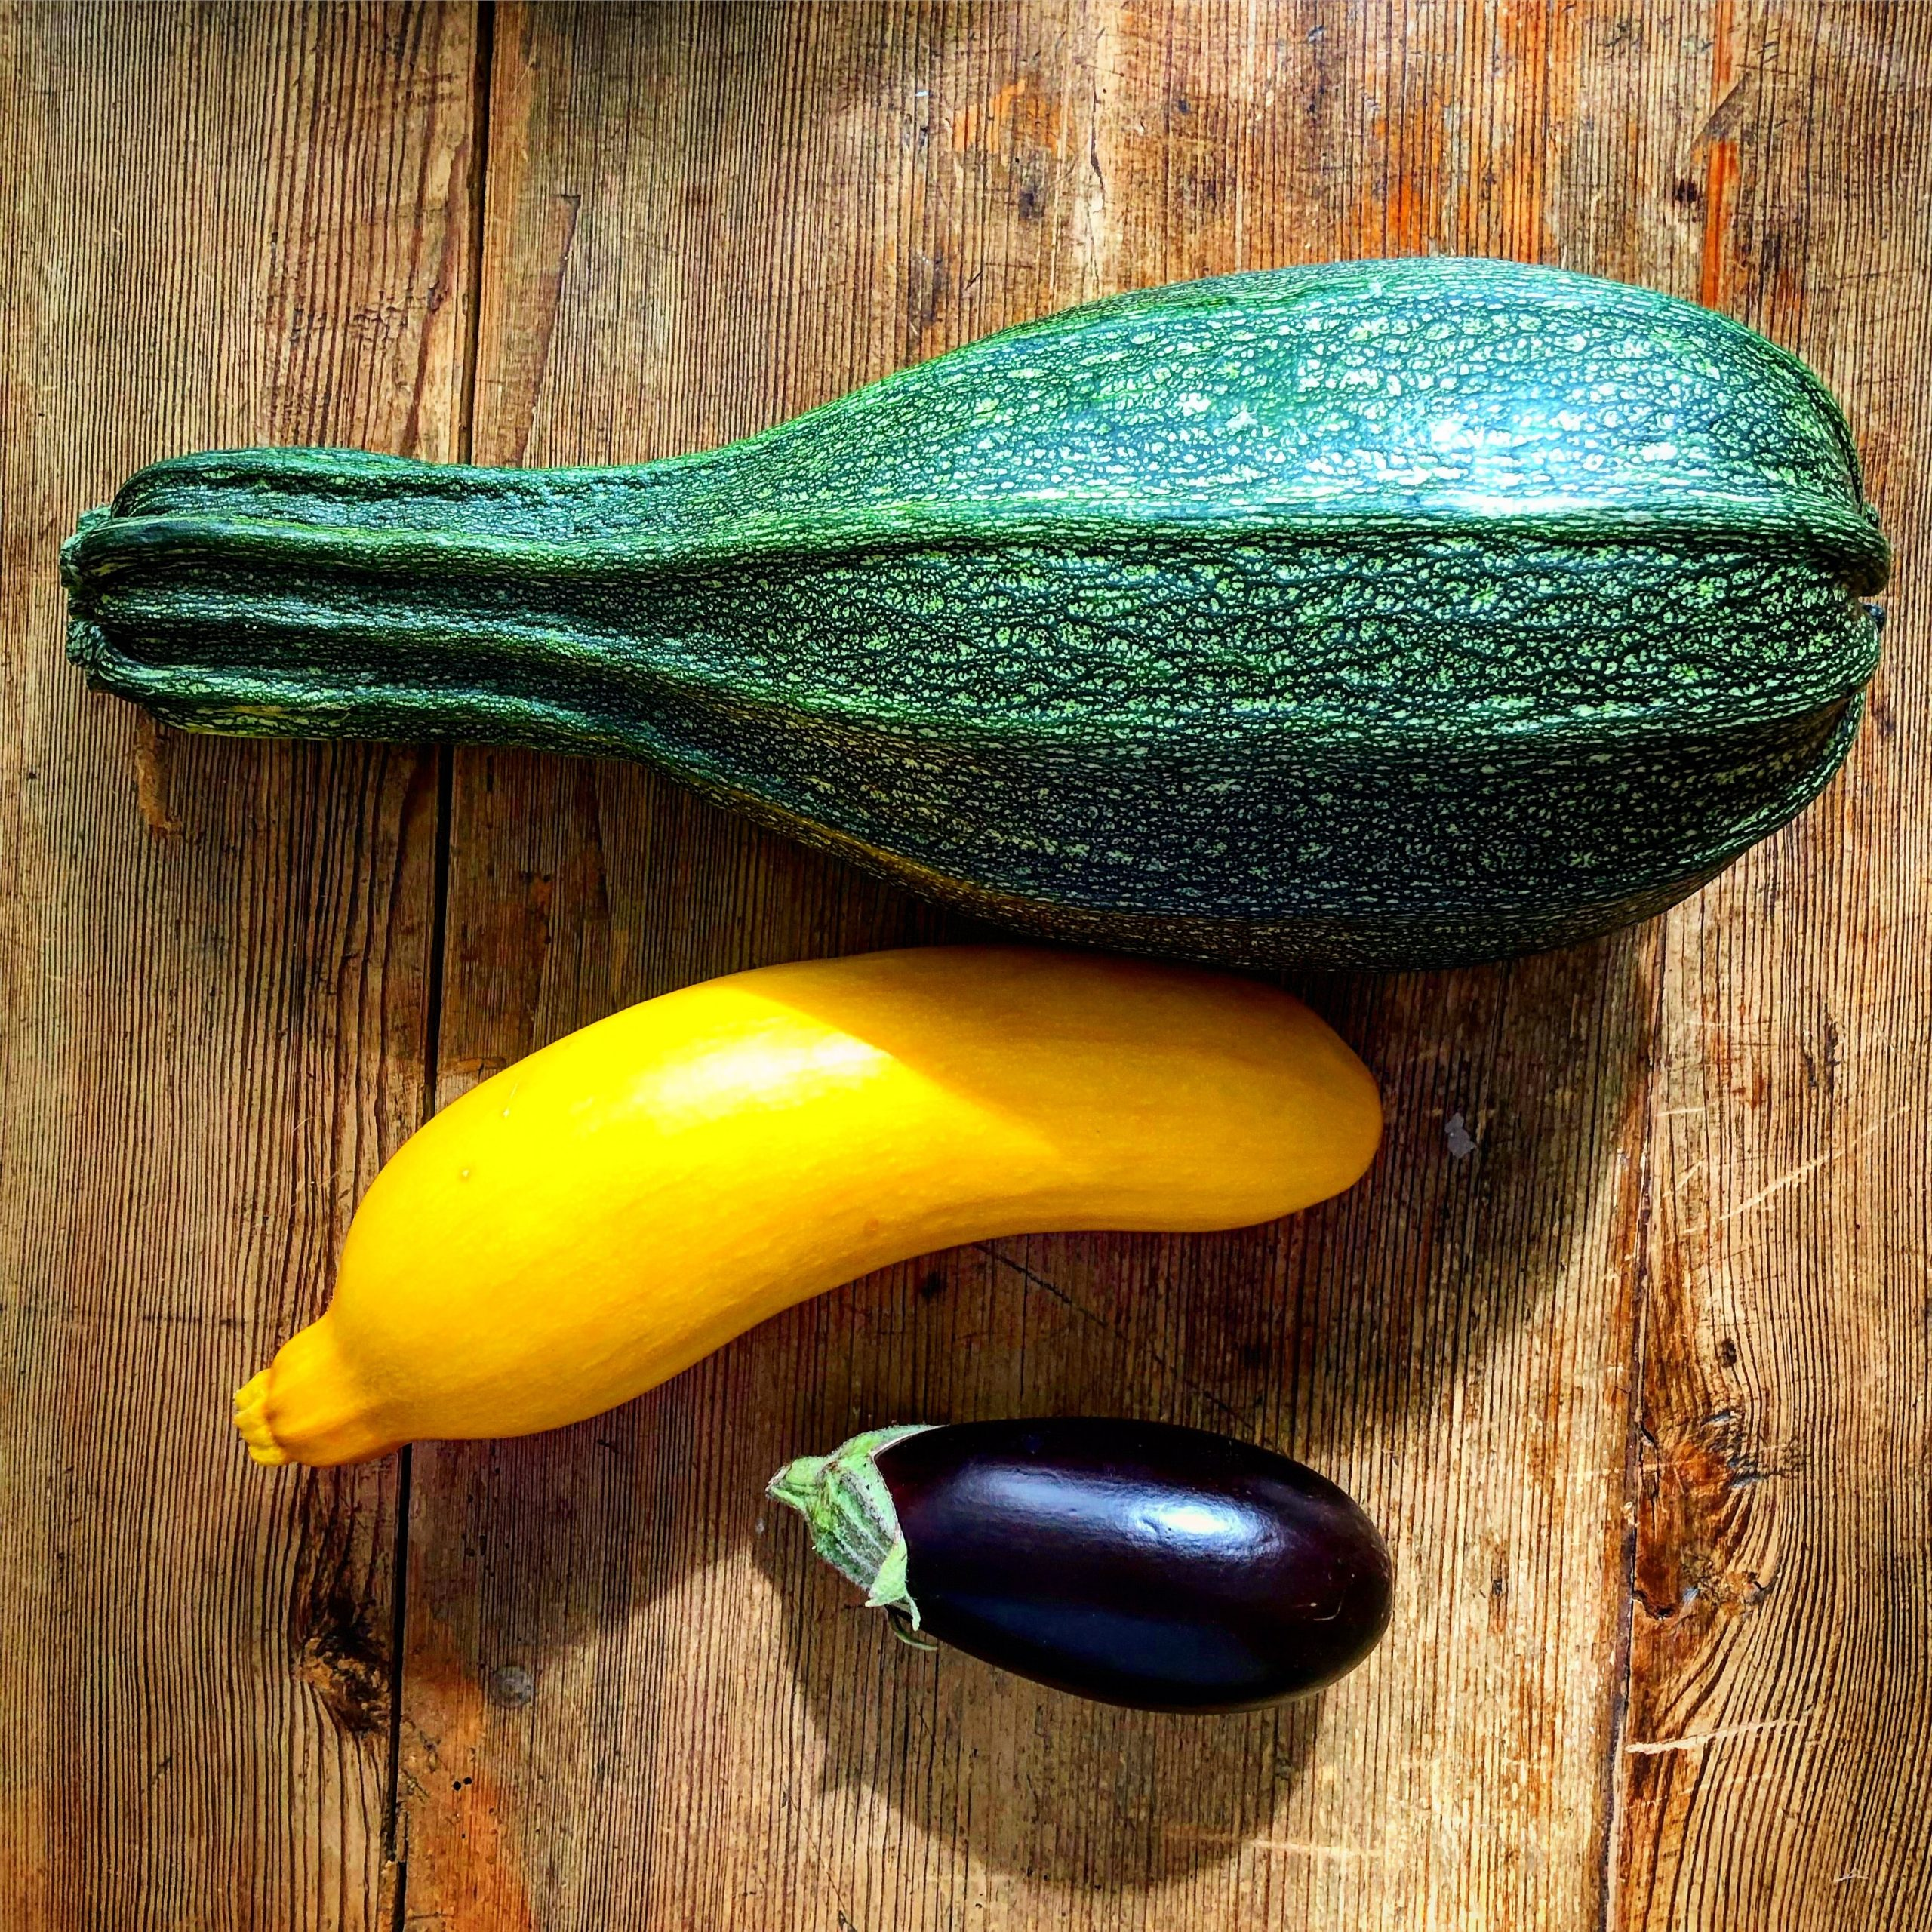 A large green marrow, a yellow courgette and an aubergine on a wooden table